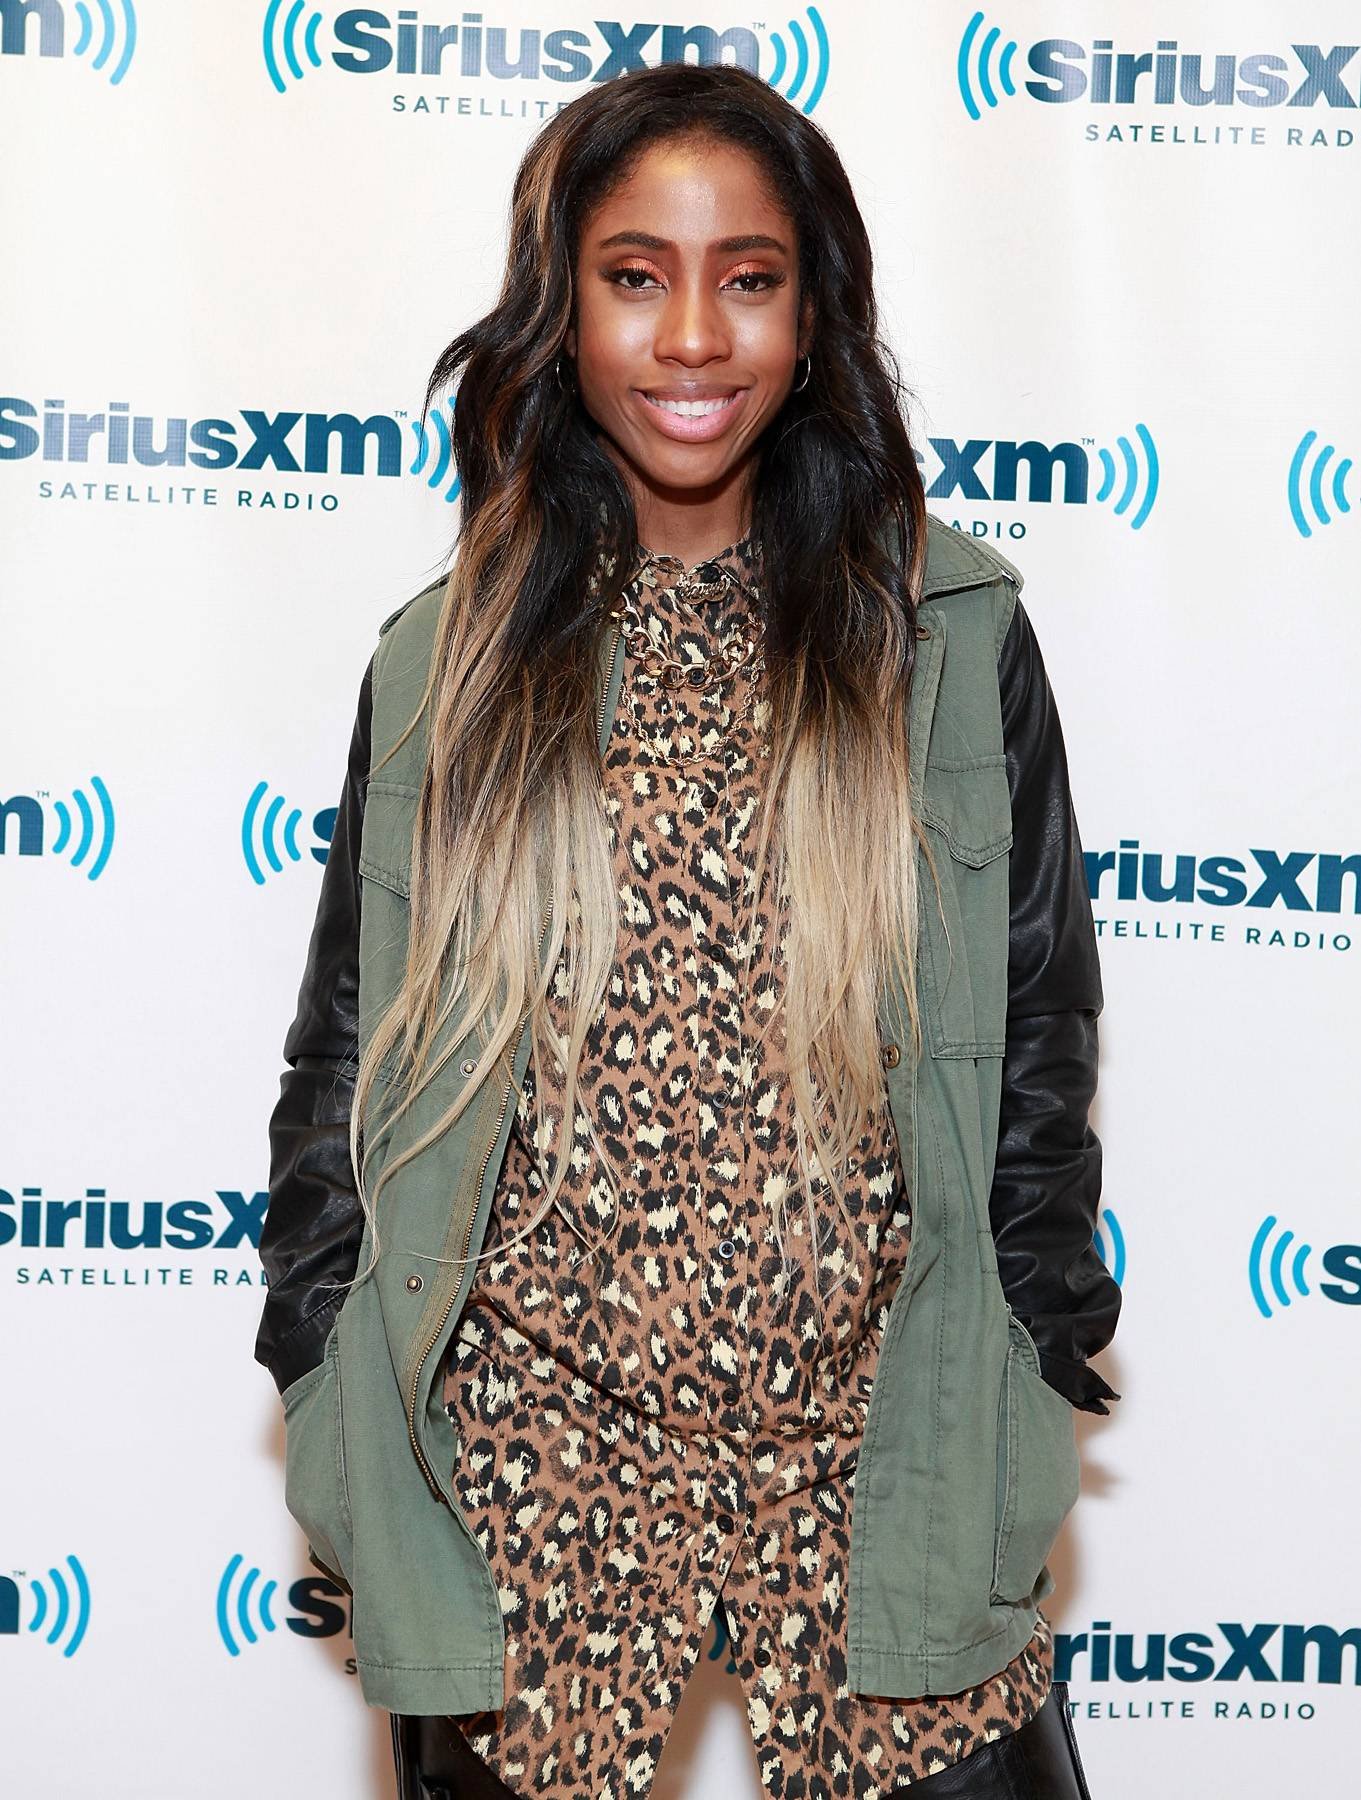 Group to Solo - Sevyn Streeter got her first taste of fame as a part of the group Rich Girl, but when the group failed to take off because of label politics, she became a songwriter which eventually led her to being a solo star.(Photo: Robin Marchant/Getty Images)